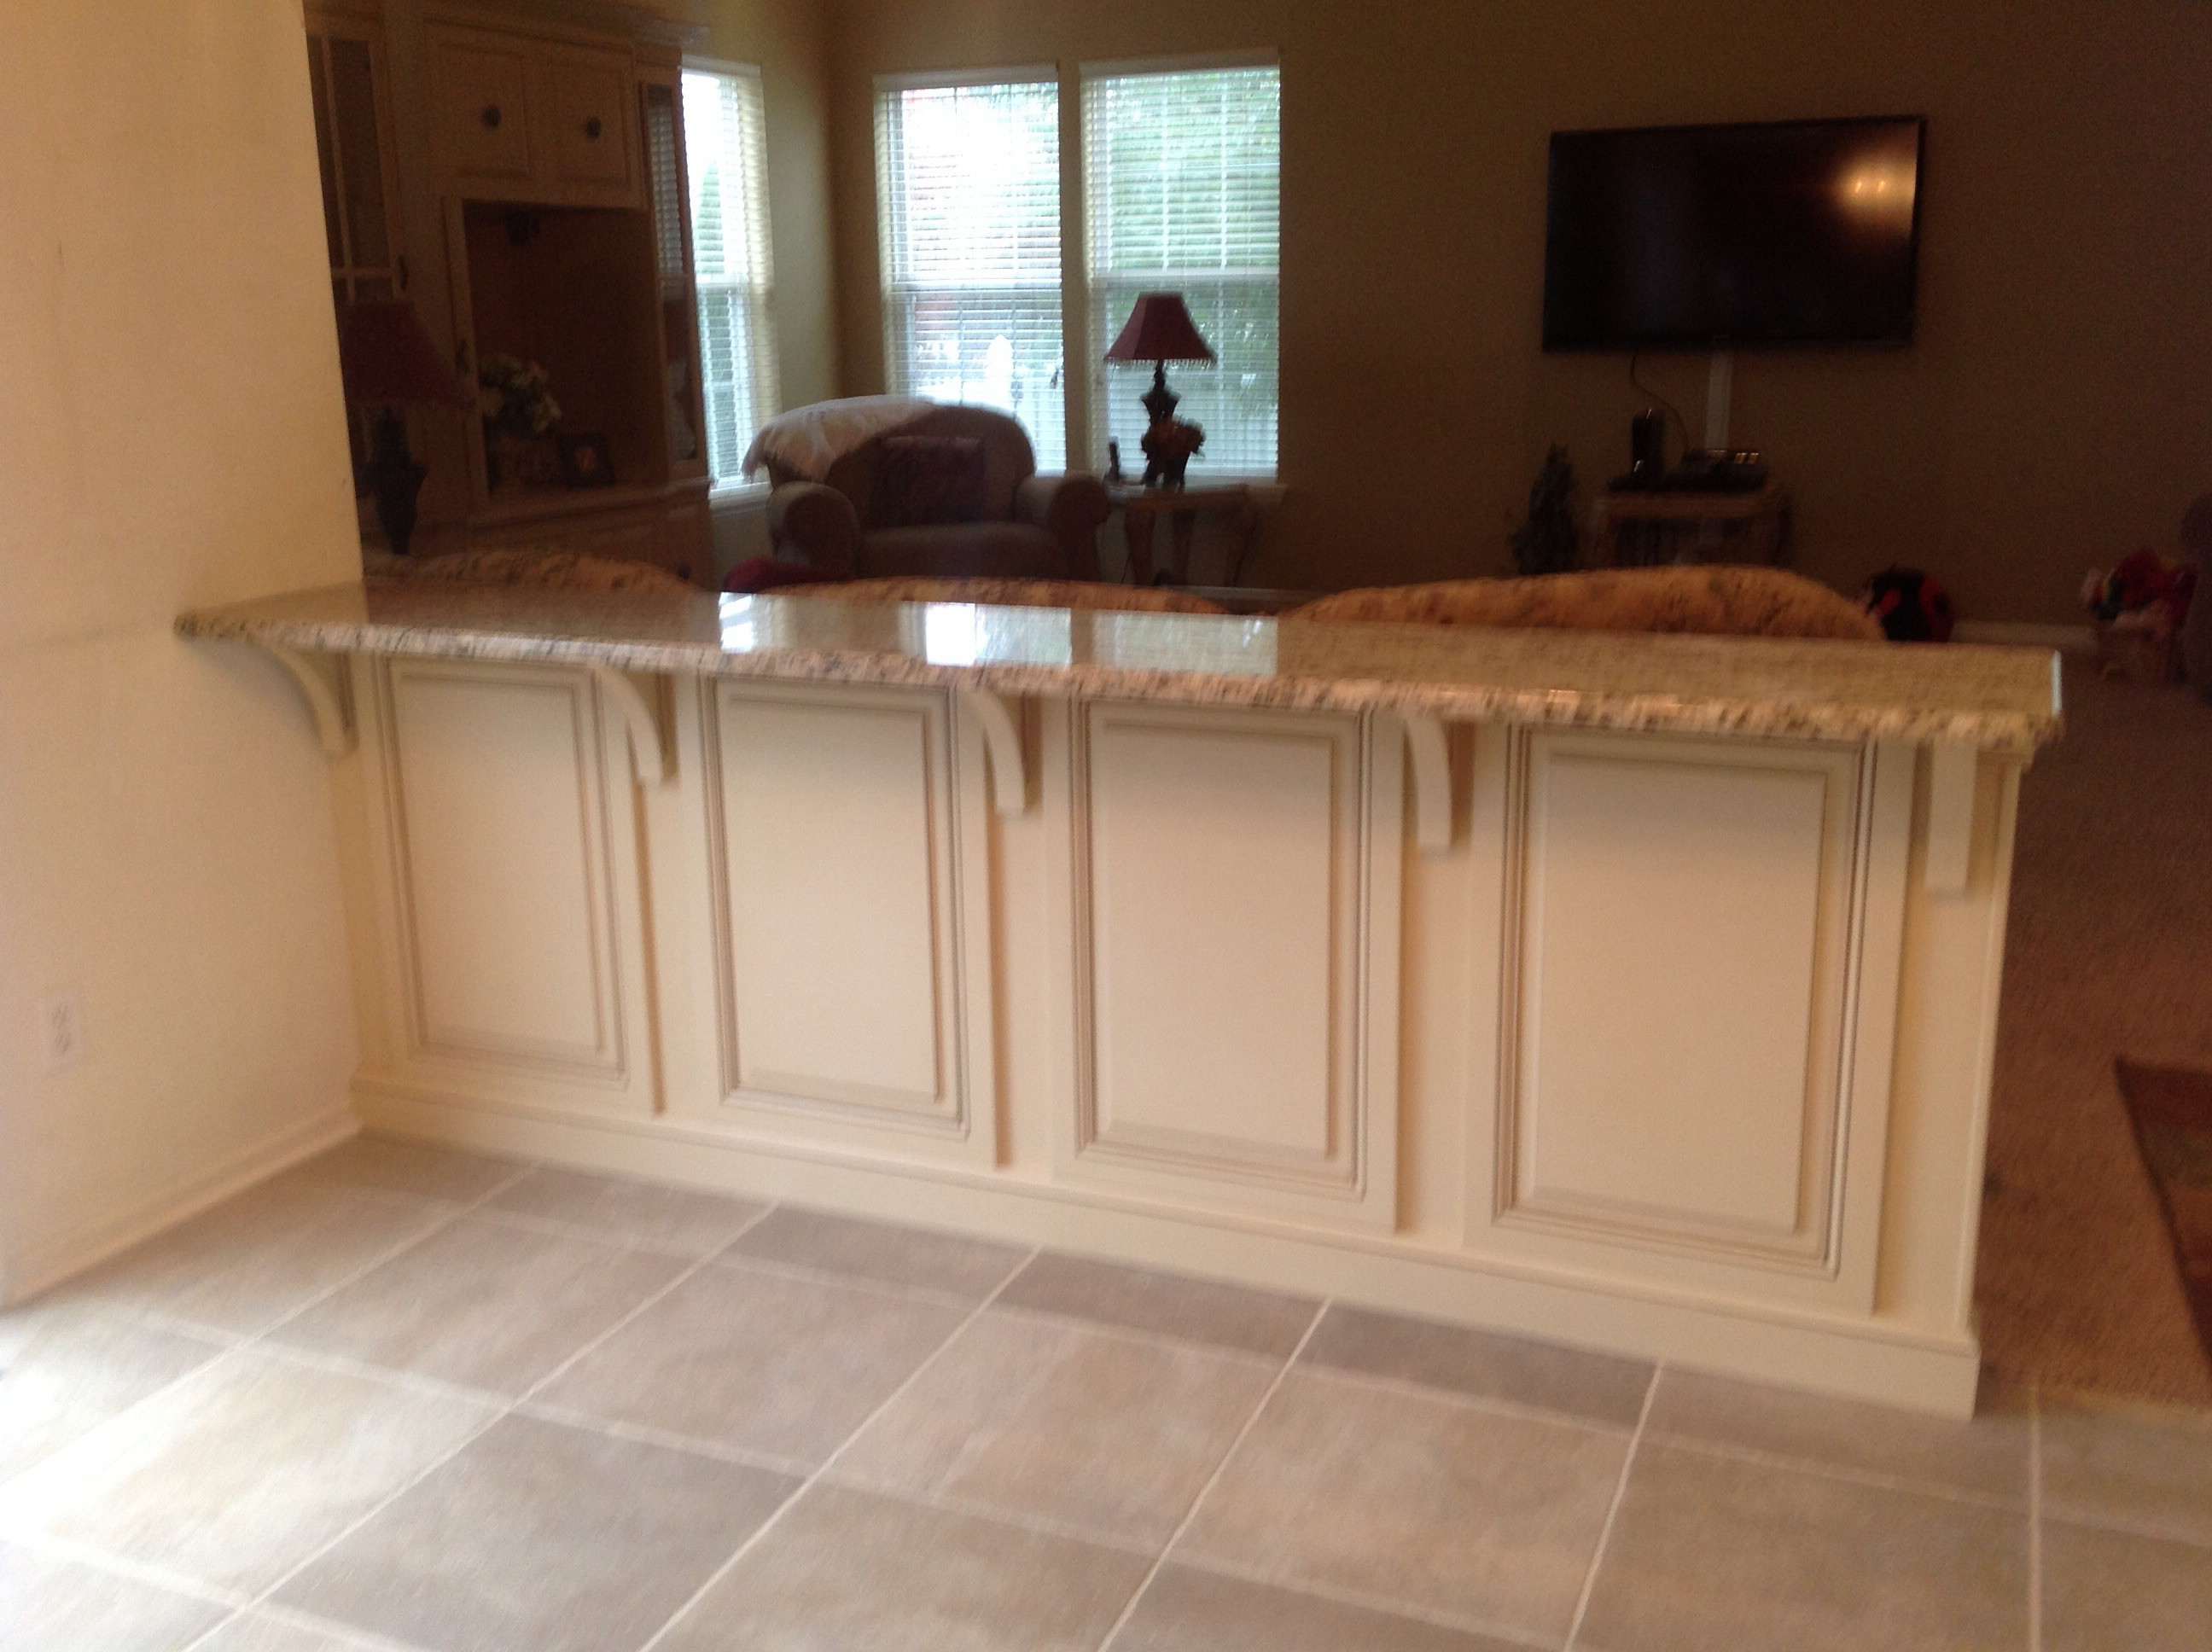 Kitchen Update In Lumberton Located In South Jersey A